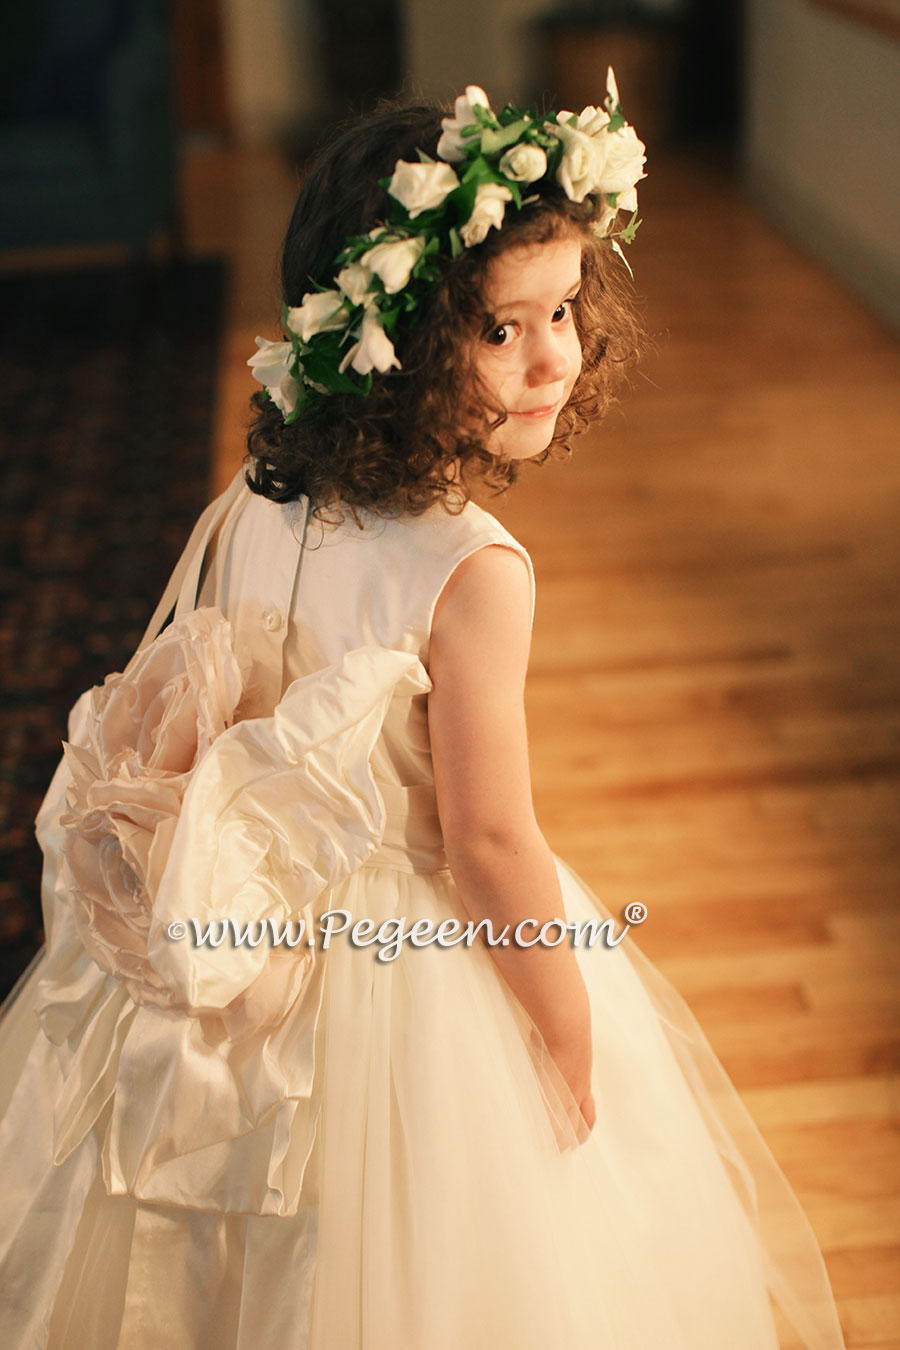 Pegeen Couture Flower Girl Dress Style 402 in New Ivory with Pegeen Signature Bustle